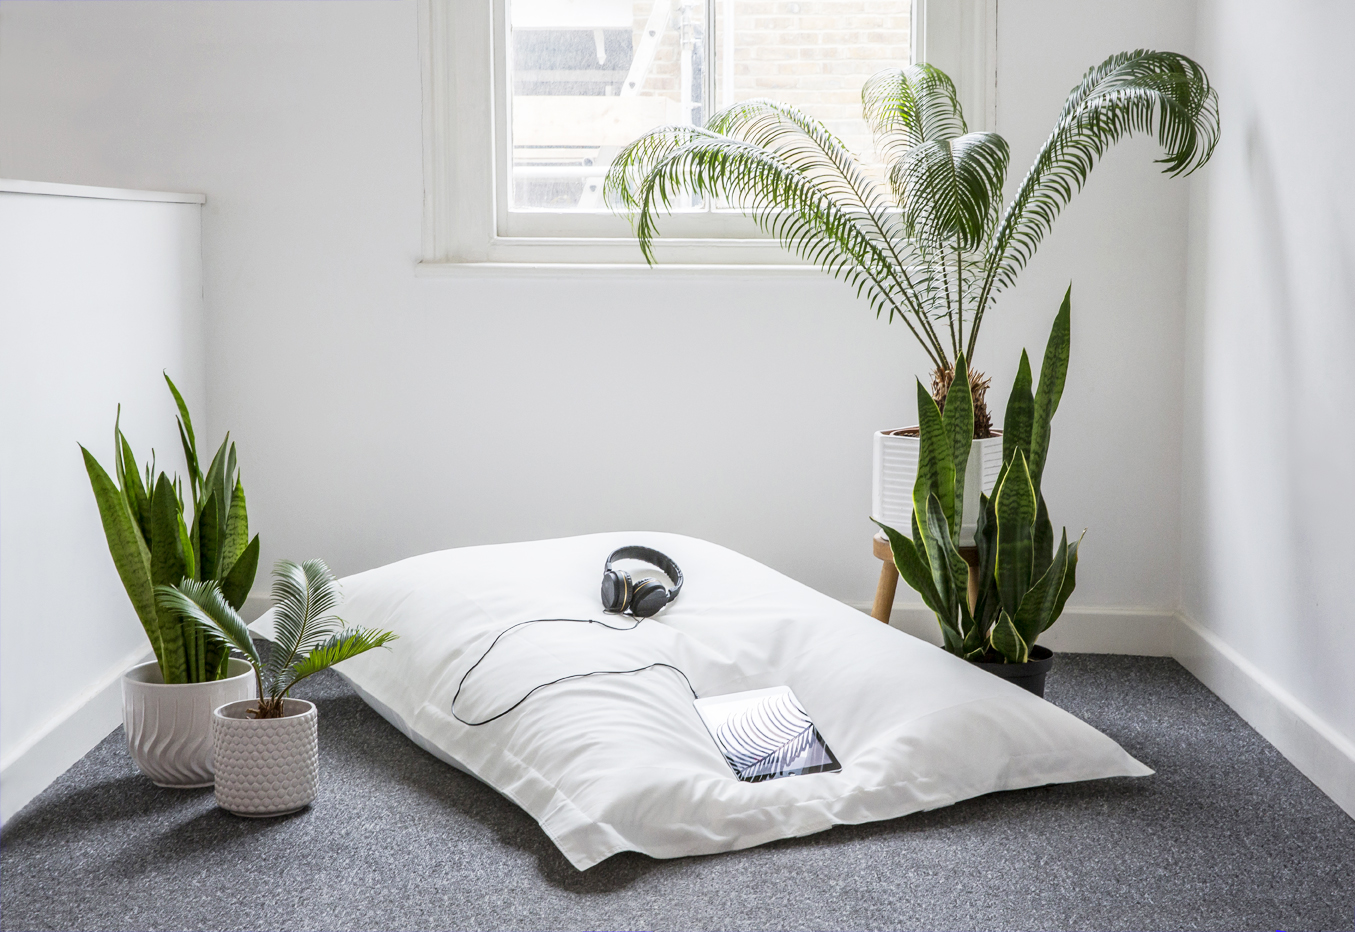 Installation view,  Hard/drive...   Lounging island comprising XL bean pillow, plants (Cycas revoluta and Sansevieria trifasciata)*, and iPad showing  Hard/drive 's website. Sansevieria - known as 'Zeylanica' Snake Plant (left) and 'Laurentii' Mother-in-Law's Tongue (right) - are highly rated by NASA Clean Air Study as air-purifiers. The additional plants in this installation are Cycas revoluta - one of the most prehistoric living seed plants on the planet.  *Plants cultivated at A V A L A N C H E - an artist-run lounge and botanical garden in Peckham - growing, planting and propagating since 2015. /// Avalanche founded by Millicent Hawk   O